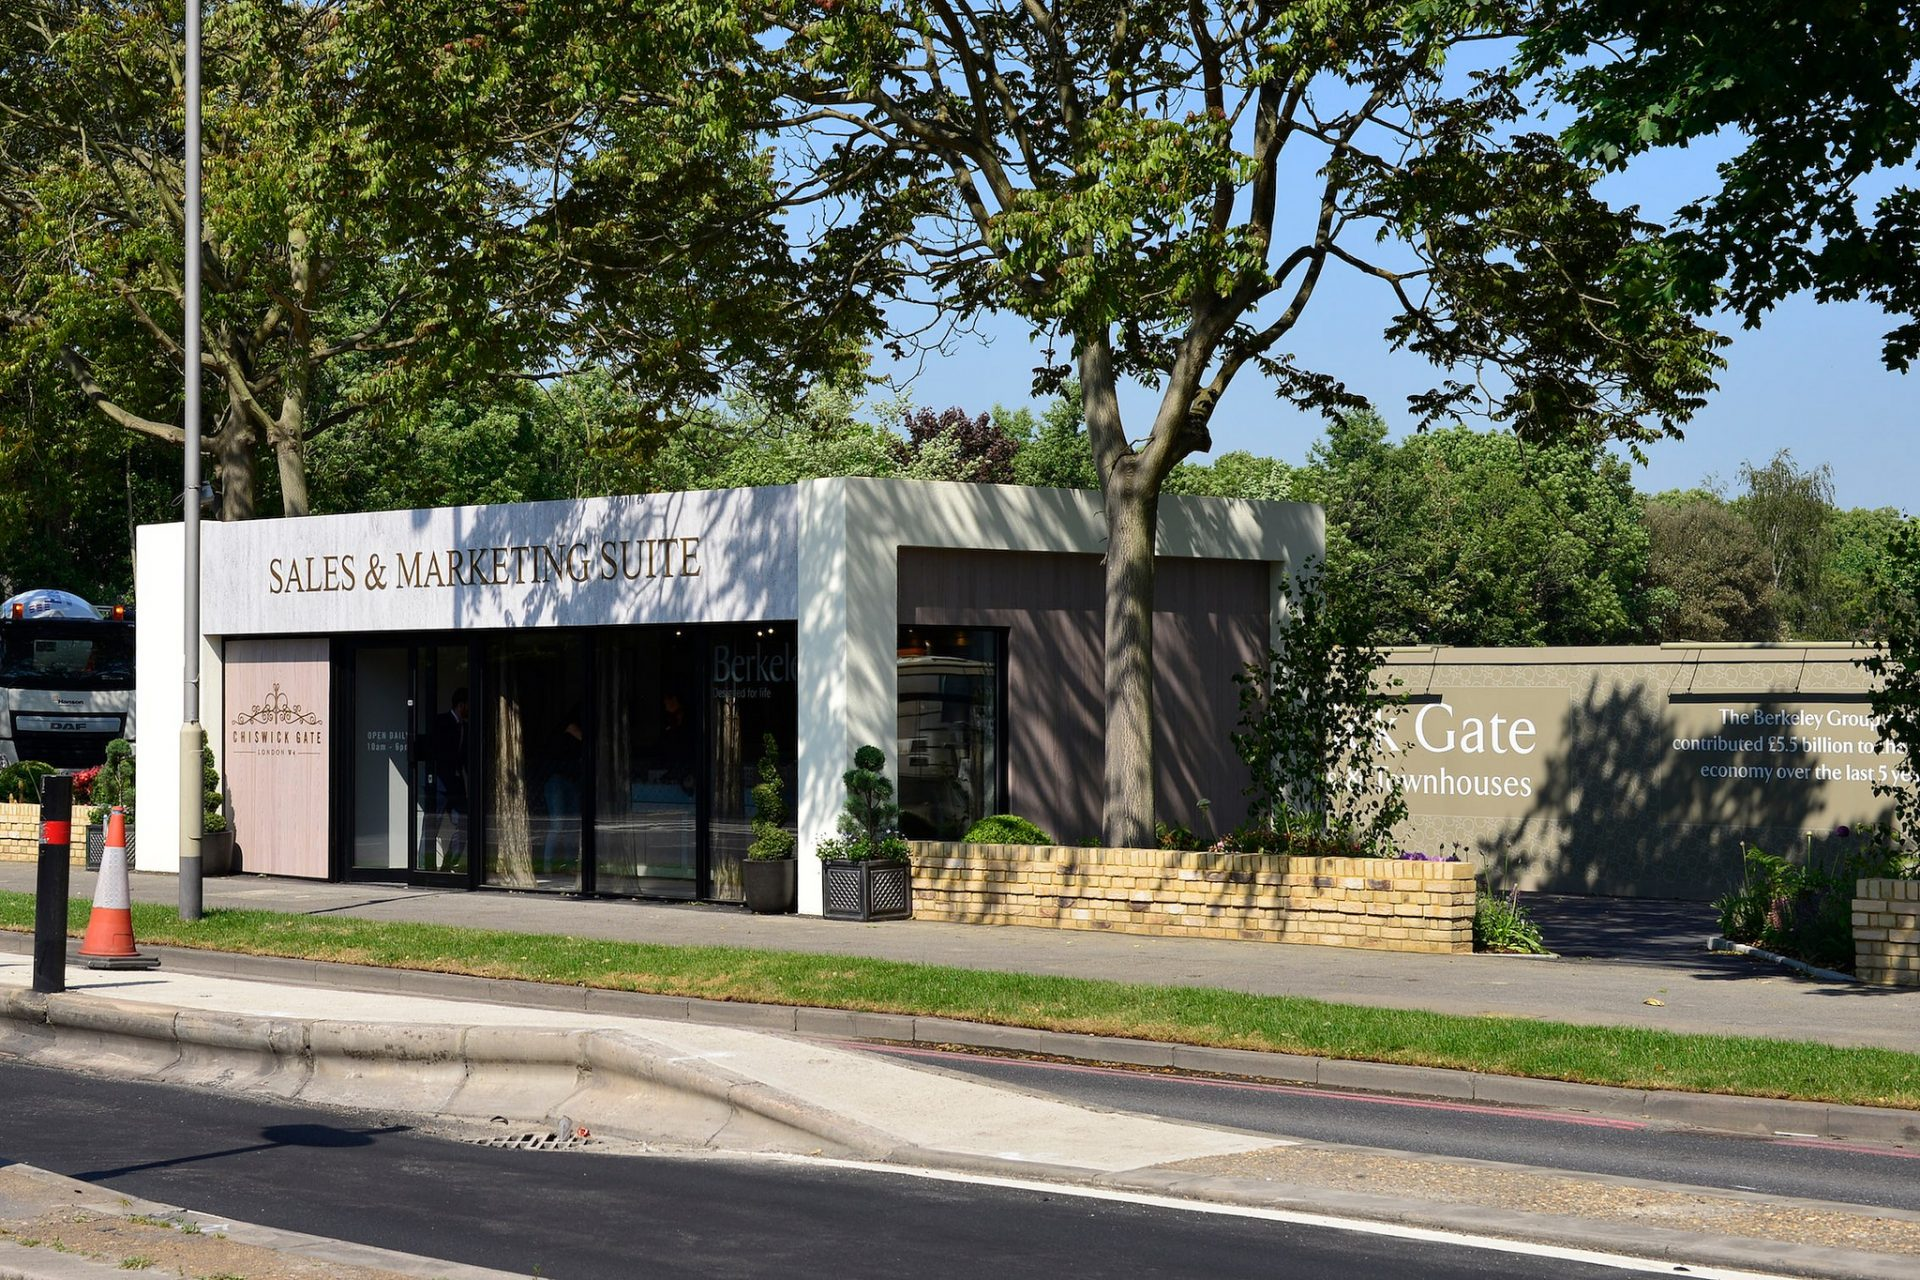 Chiswick Gate marketing suite exterior